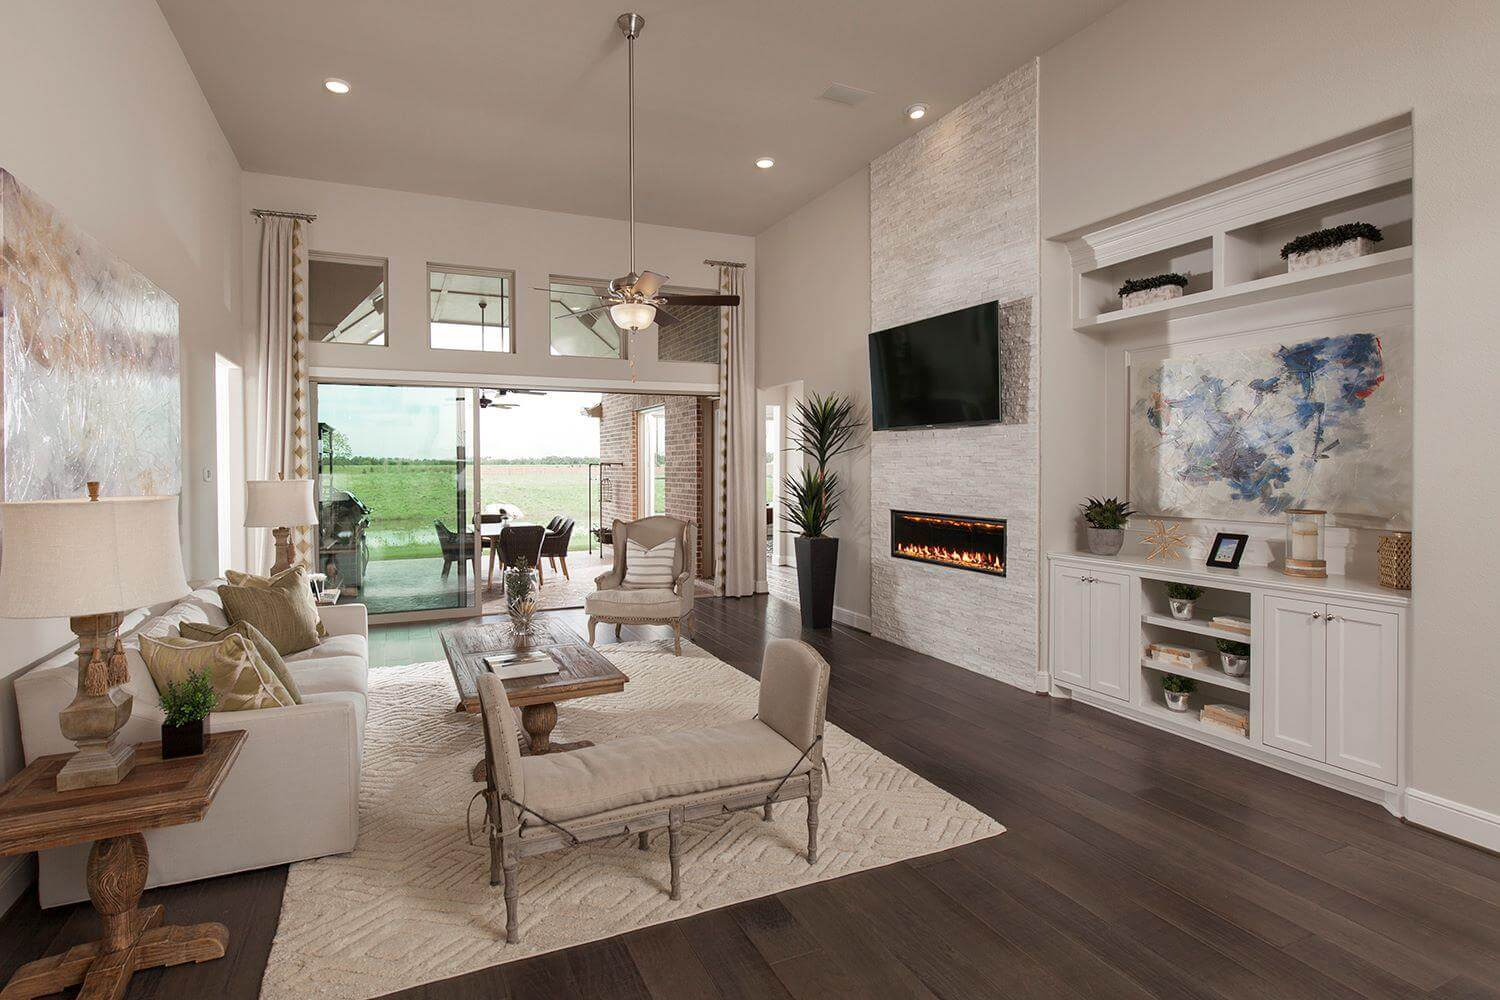 Coventry Homes Announces New Veranda Community Floor Plans at New Low Price Point